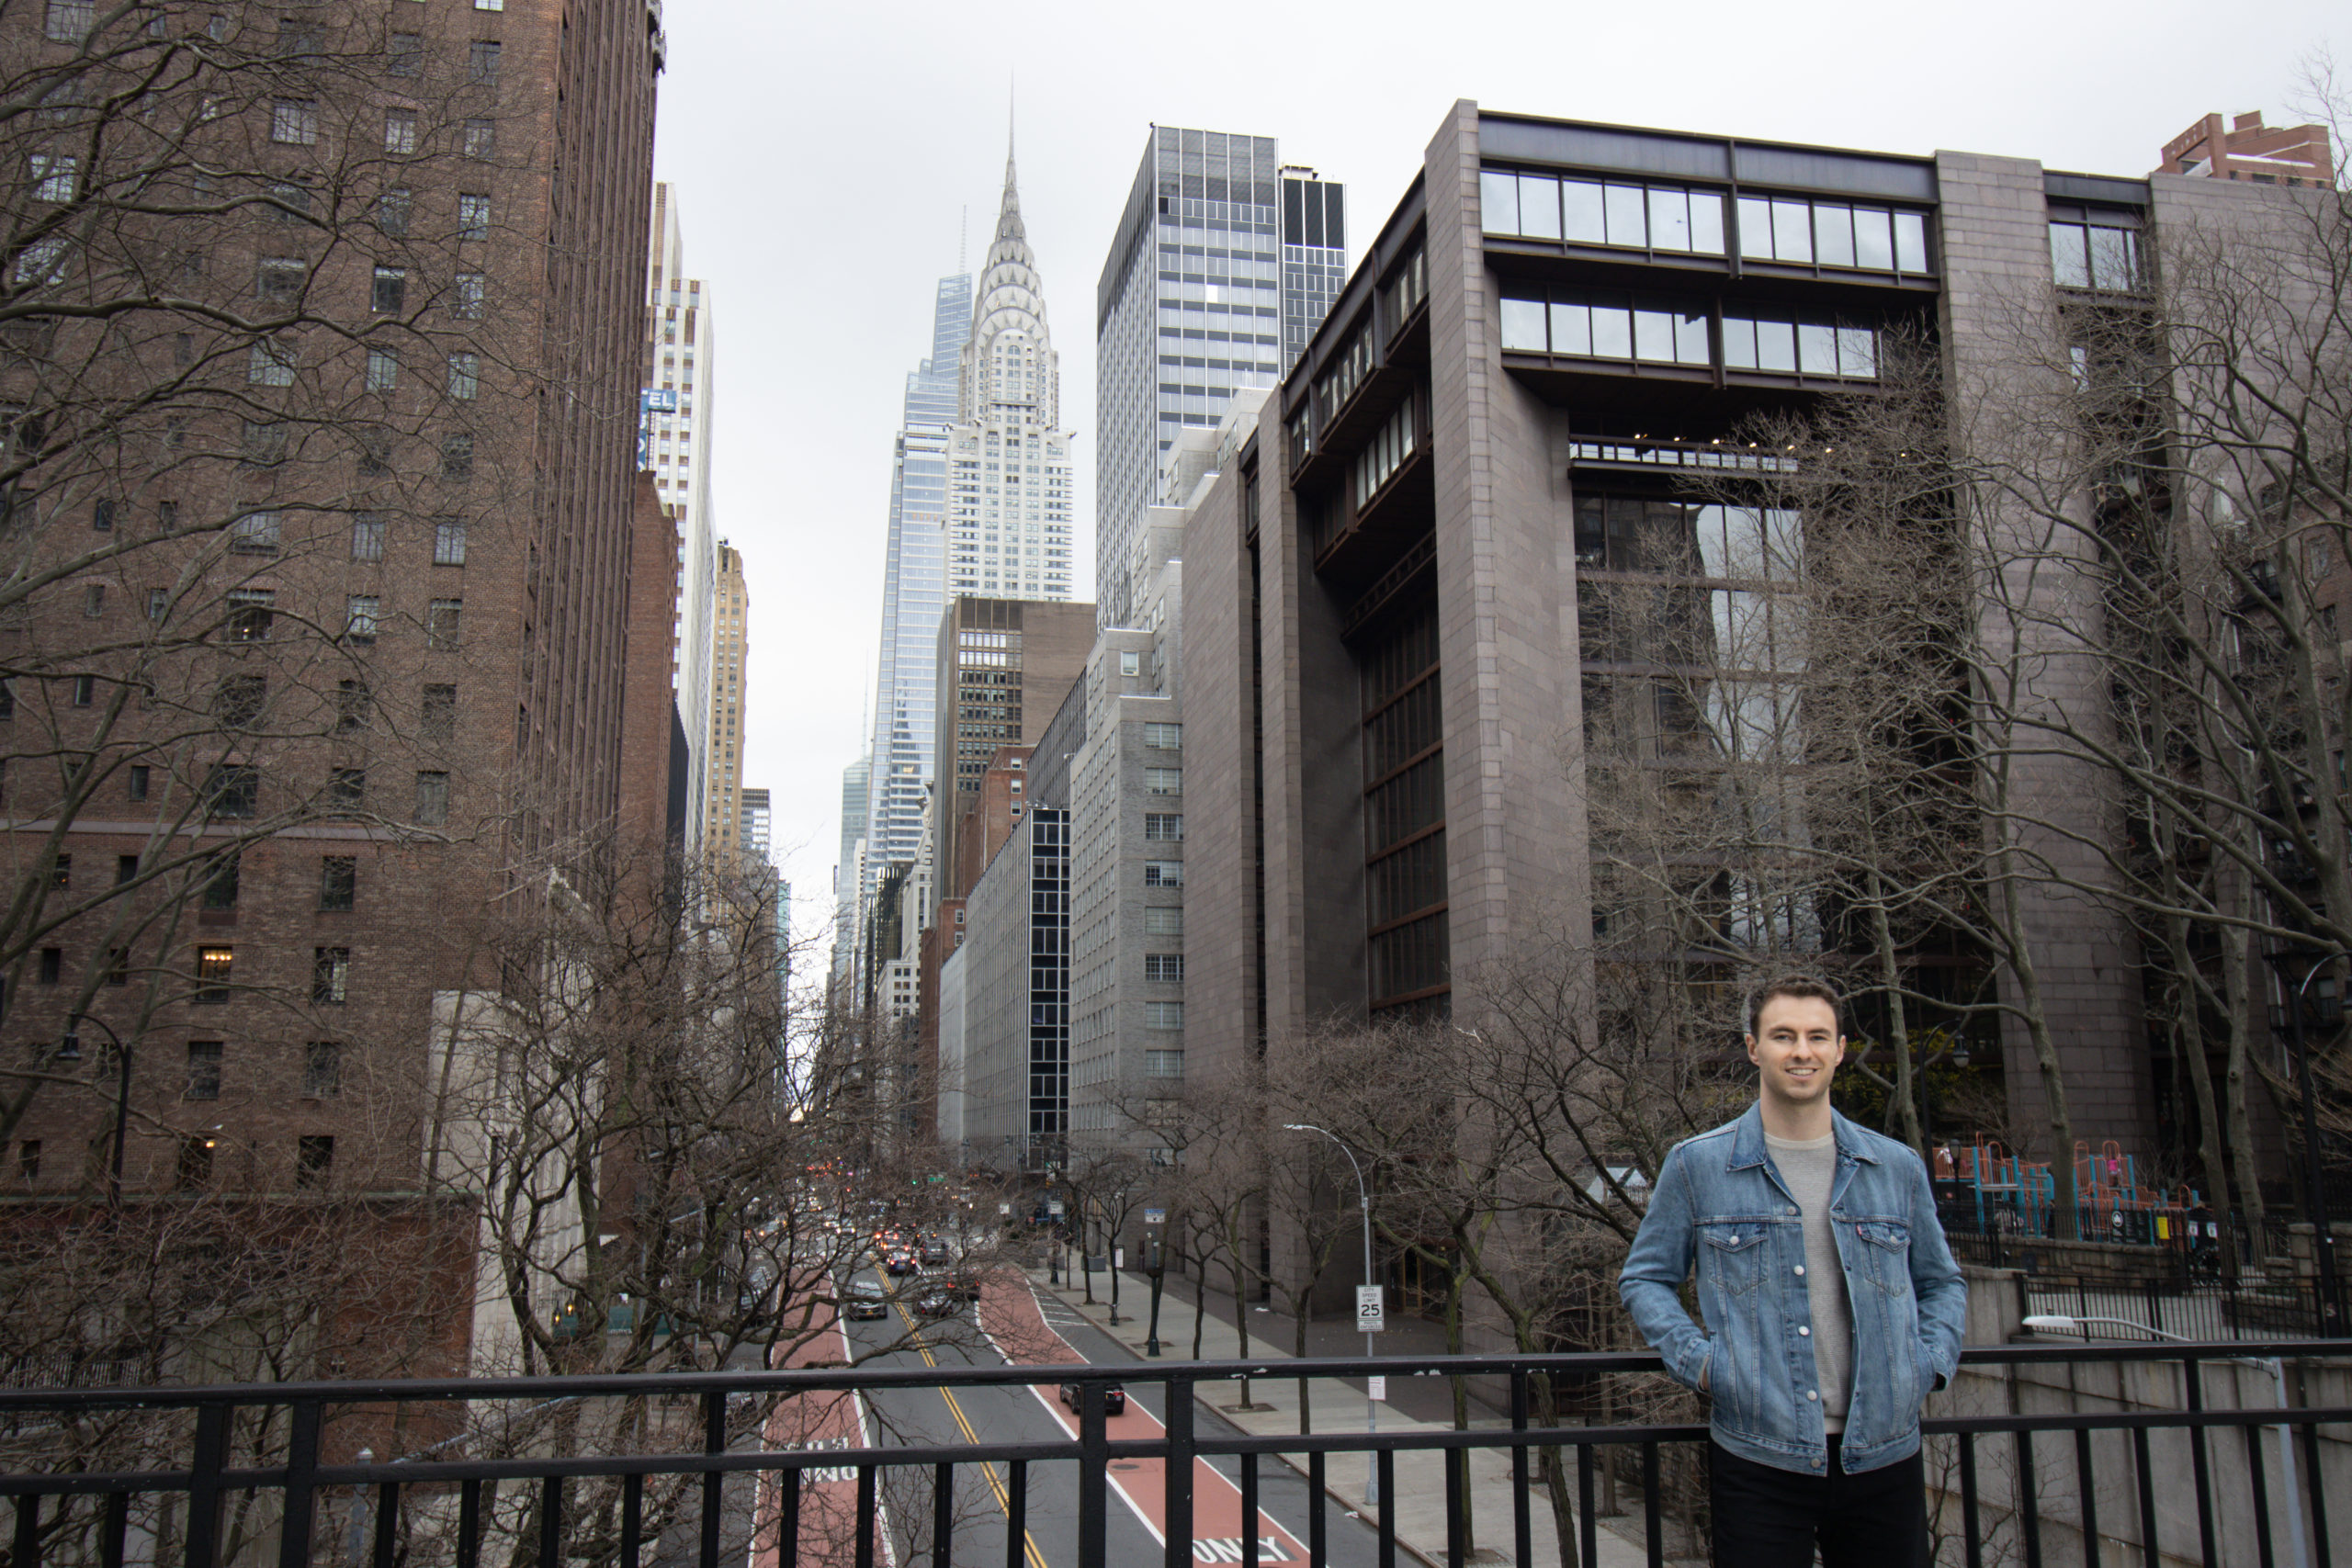 Man standing on Tudor overpass, once of the Instagram spots in NYC